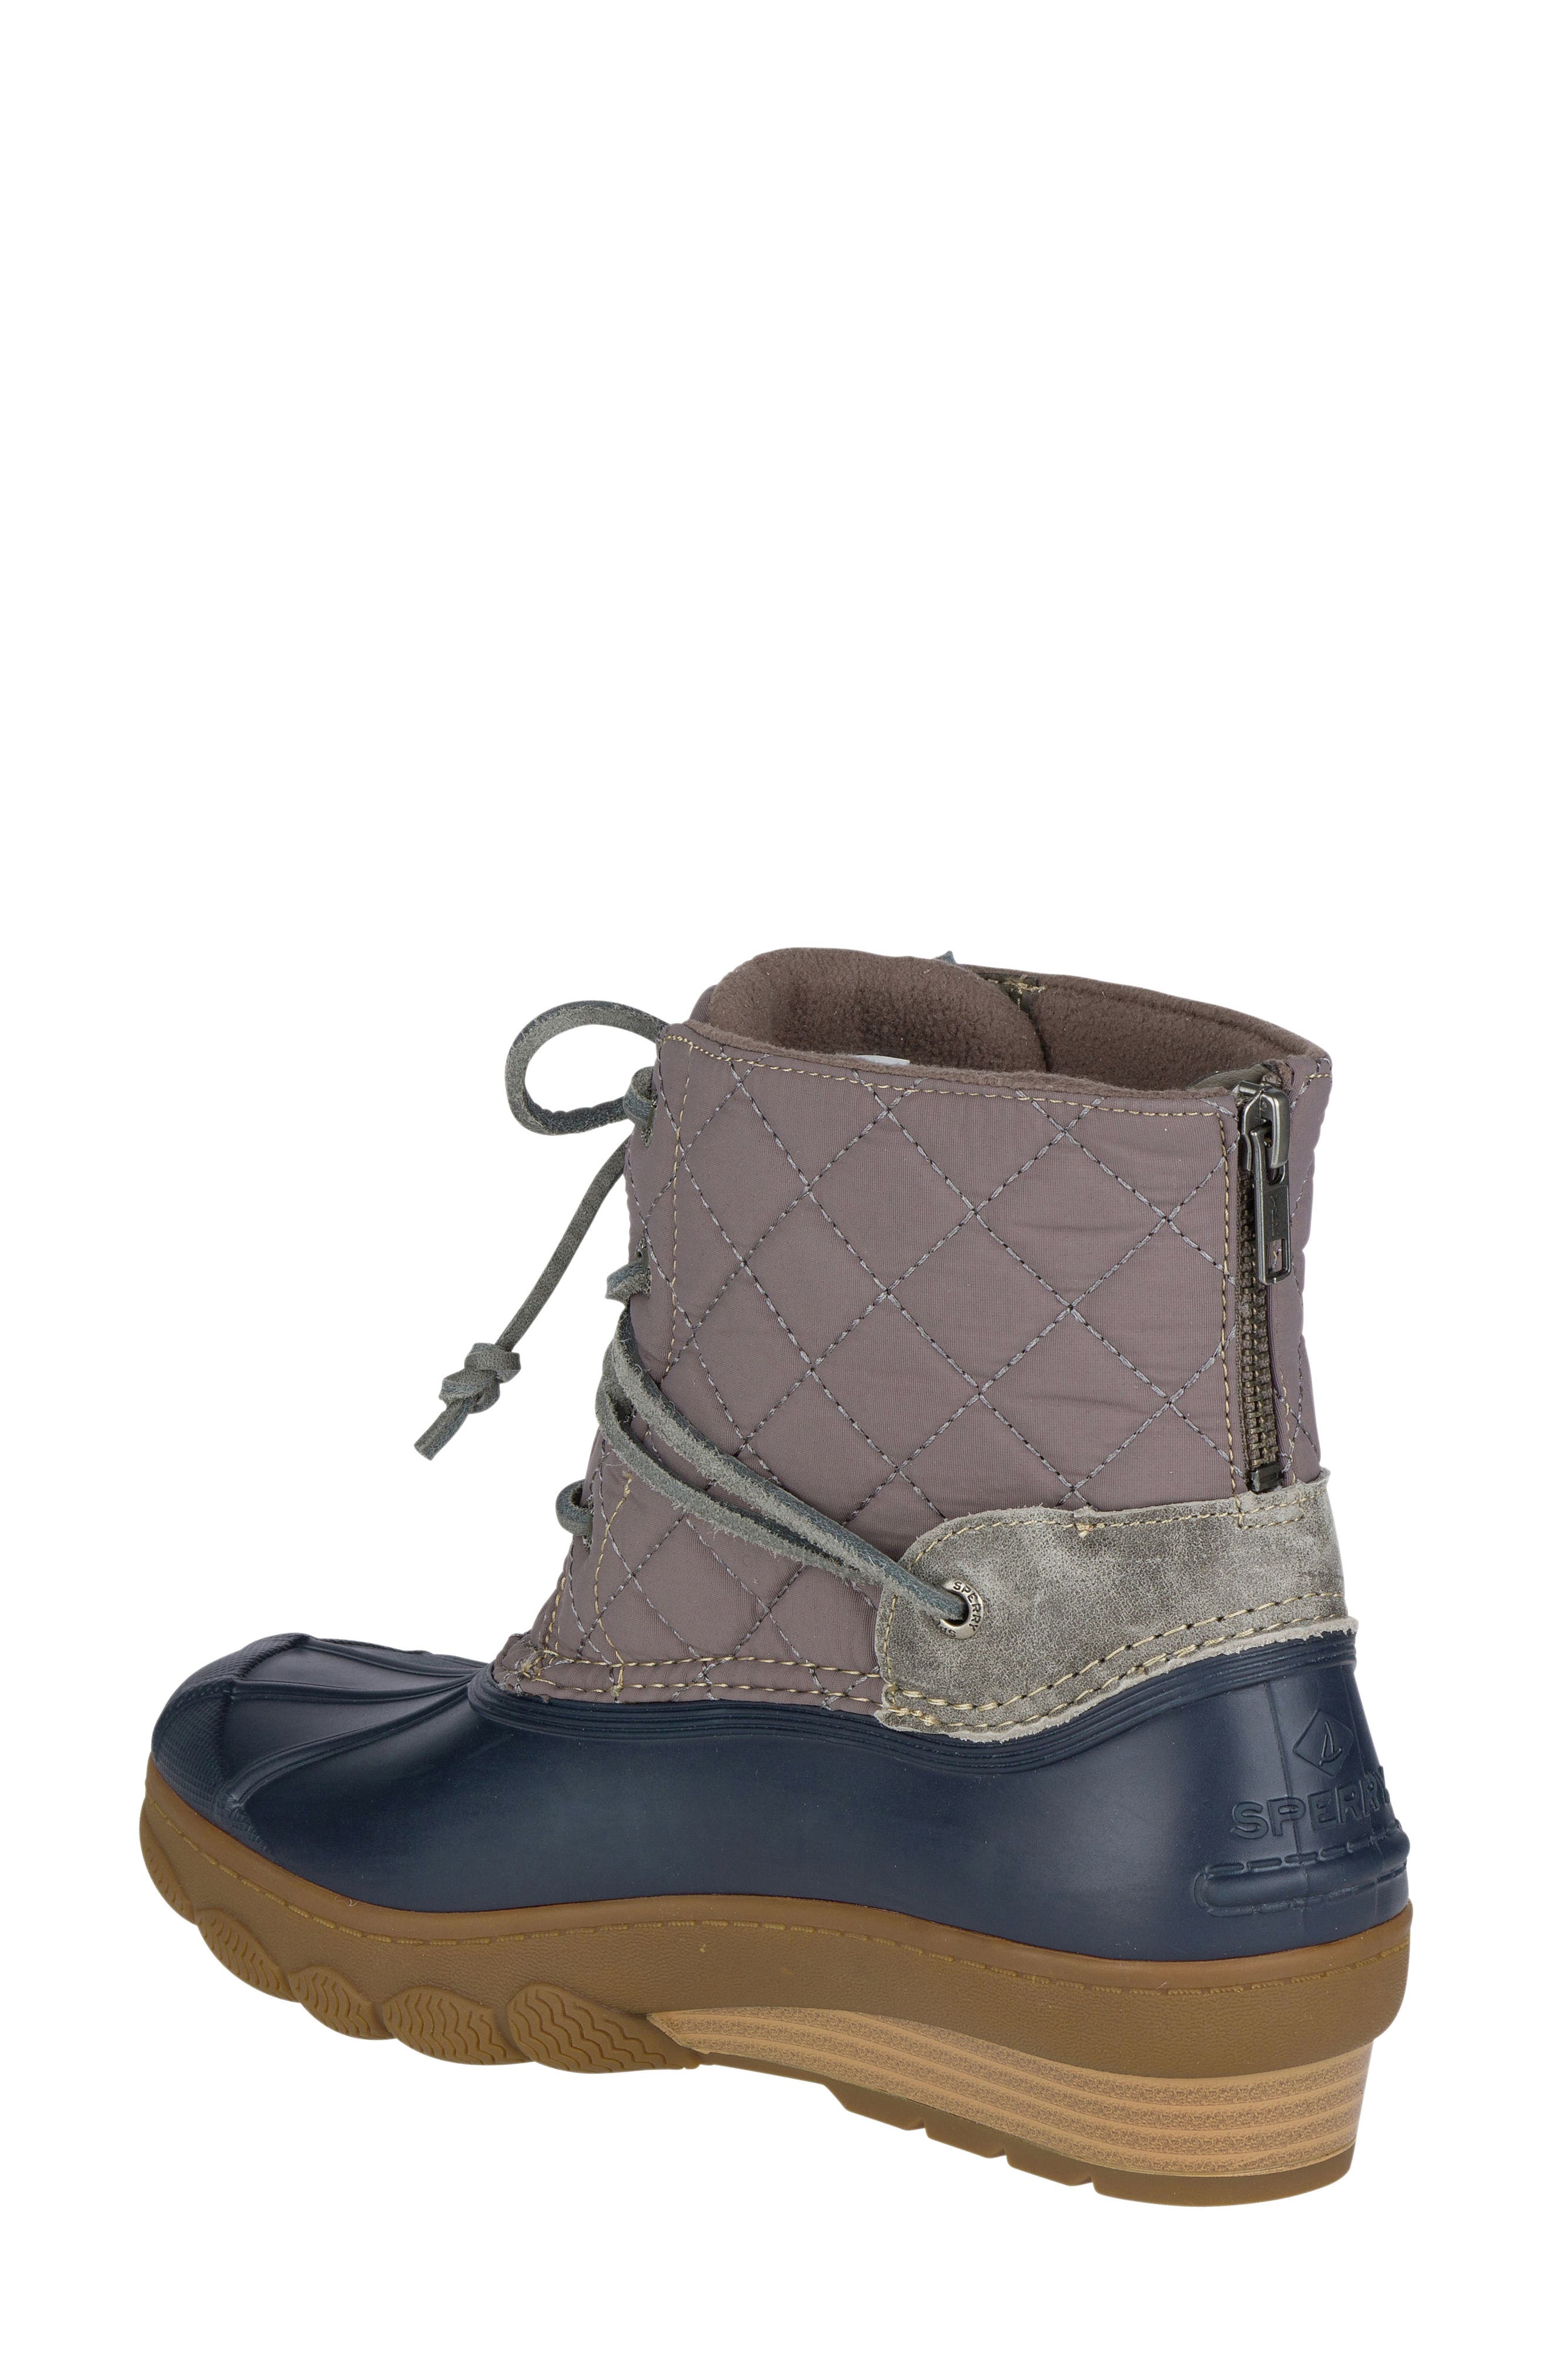 Saltwater Quilted Waterproof Boot,                             Alternate thumbnail 2, color,                             410